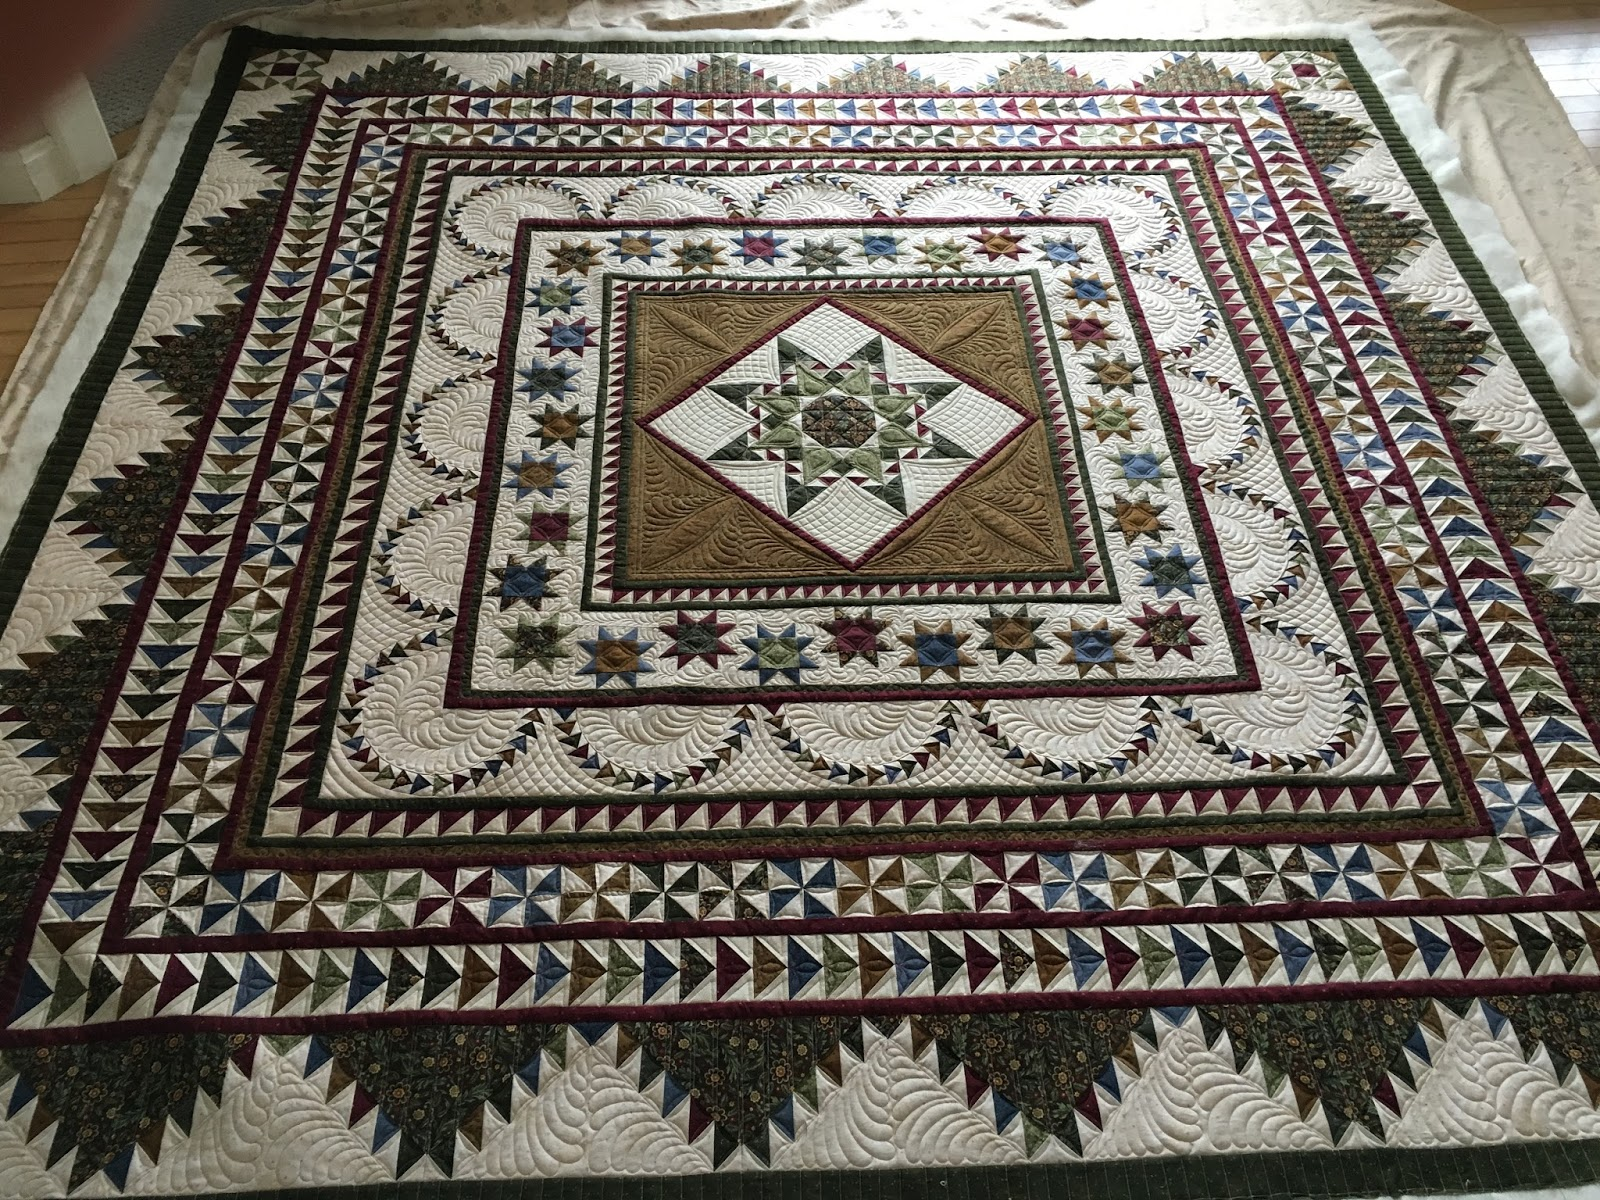 magnifico not the i are job showed but here much ivory medallion all quilt sewing on client it threads this pulled uses img too for tan fabrics gallery of just thread most a tad